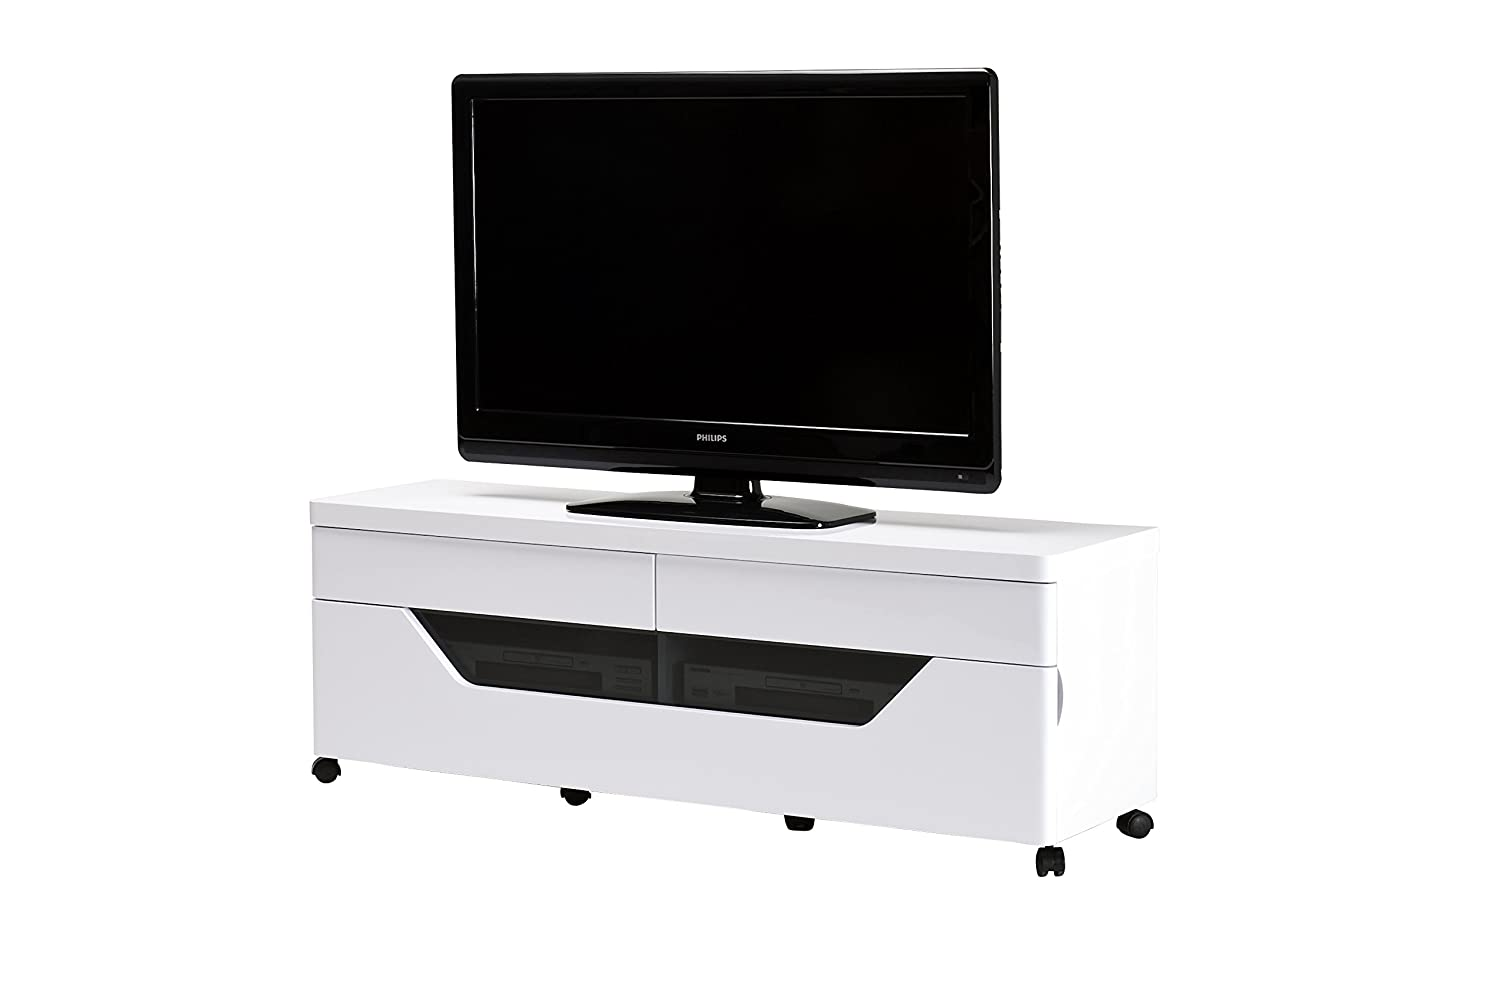 jahnke tv lowboard Jahnke Cuuba 140 JAHNKE Cu Libre TV TV Stand White High Gloss White Glass  Wood: Amazon.co.uk: Kitchen u0026 Home